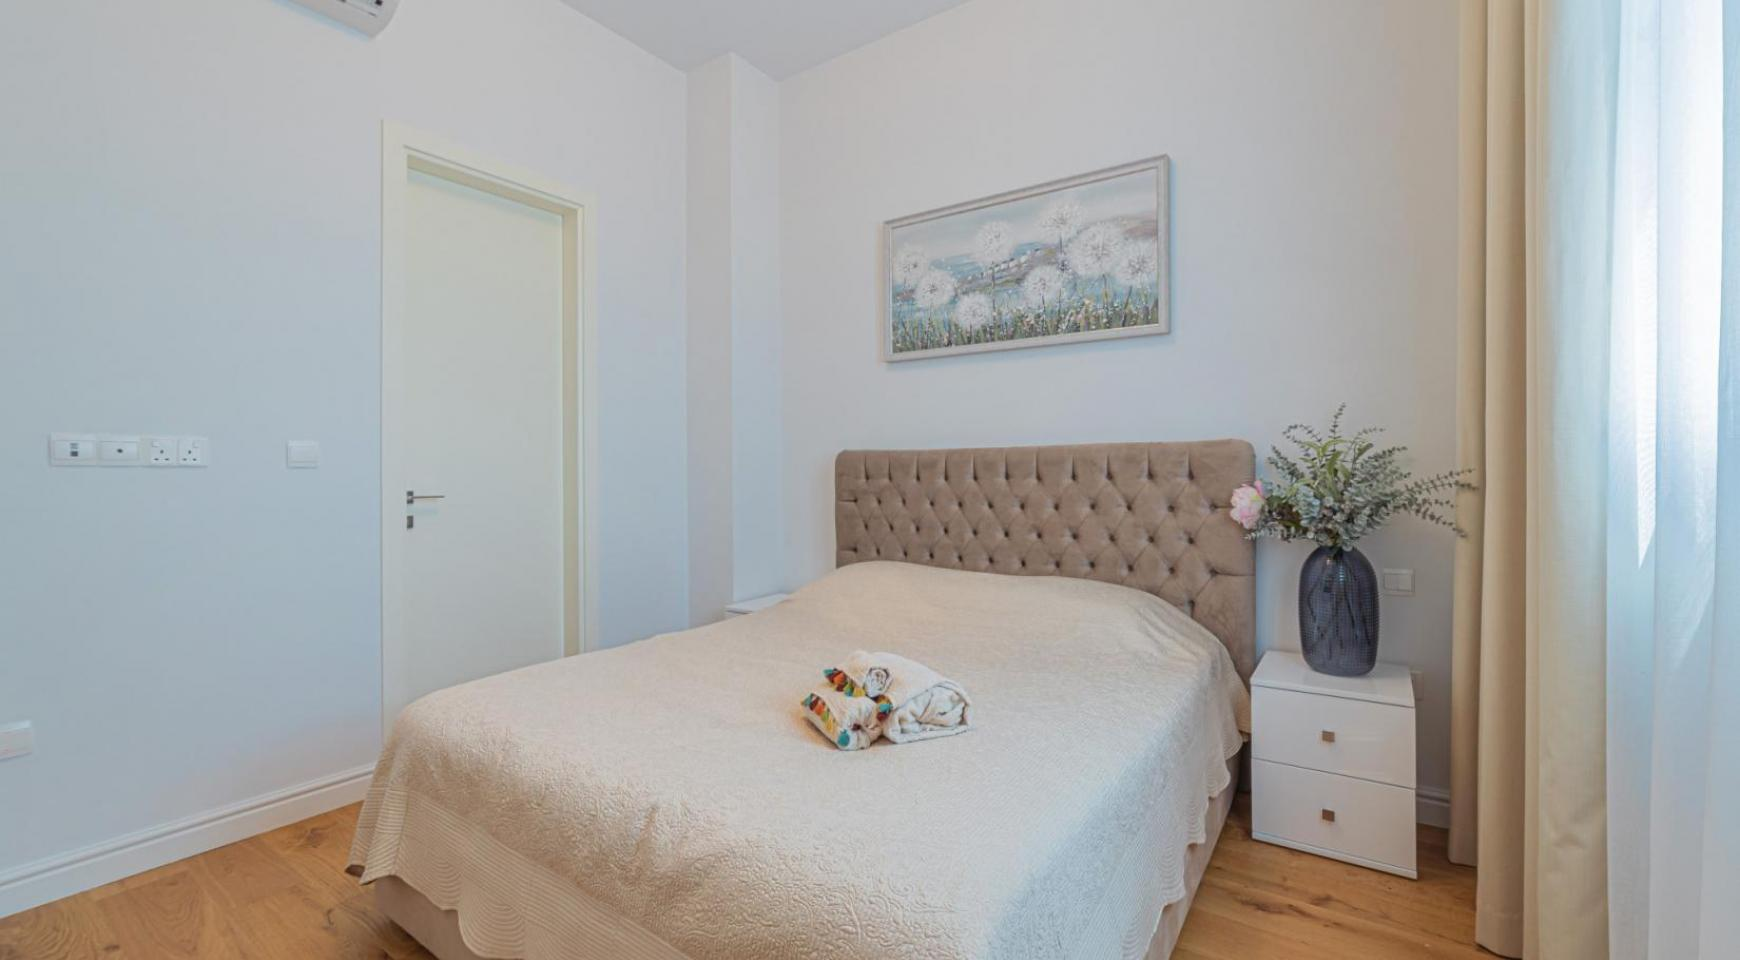 Hortensia Residence, Apt. 102. 2 Bedroom Apartment within a New Complex near the Sea  - 62